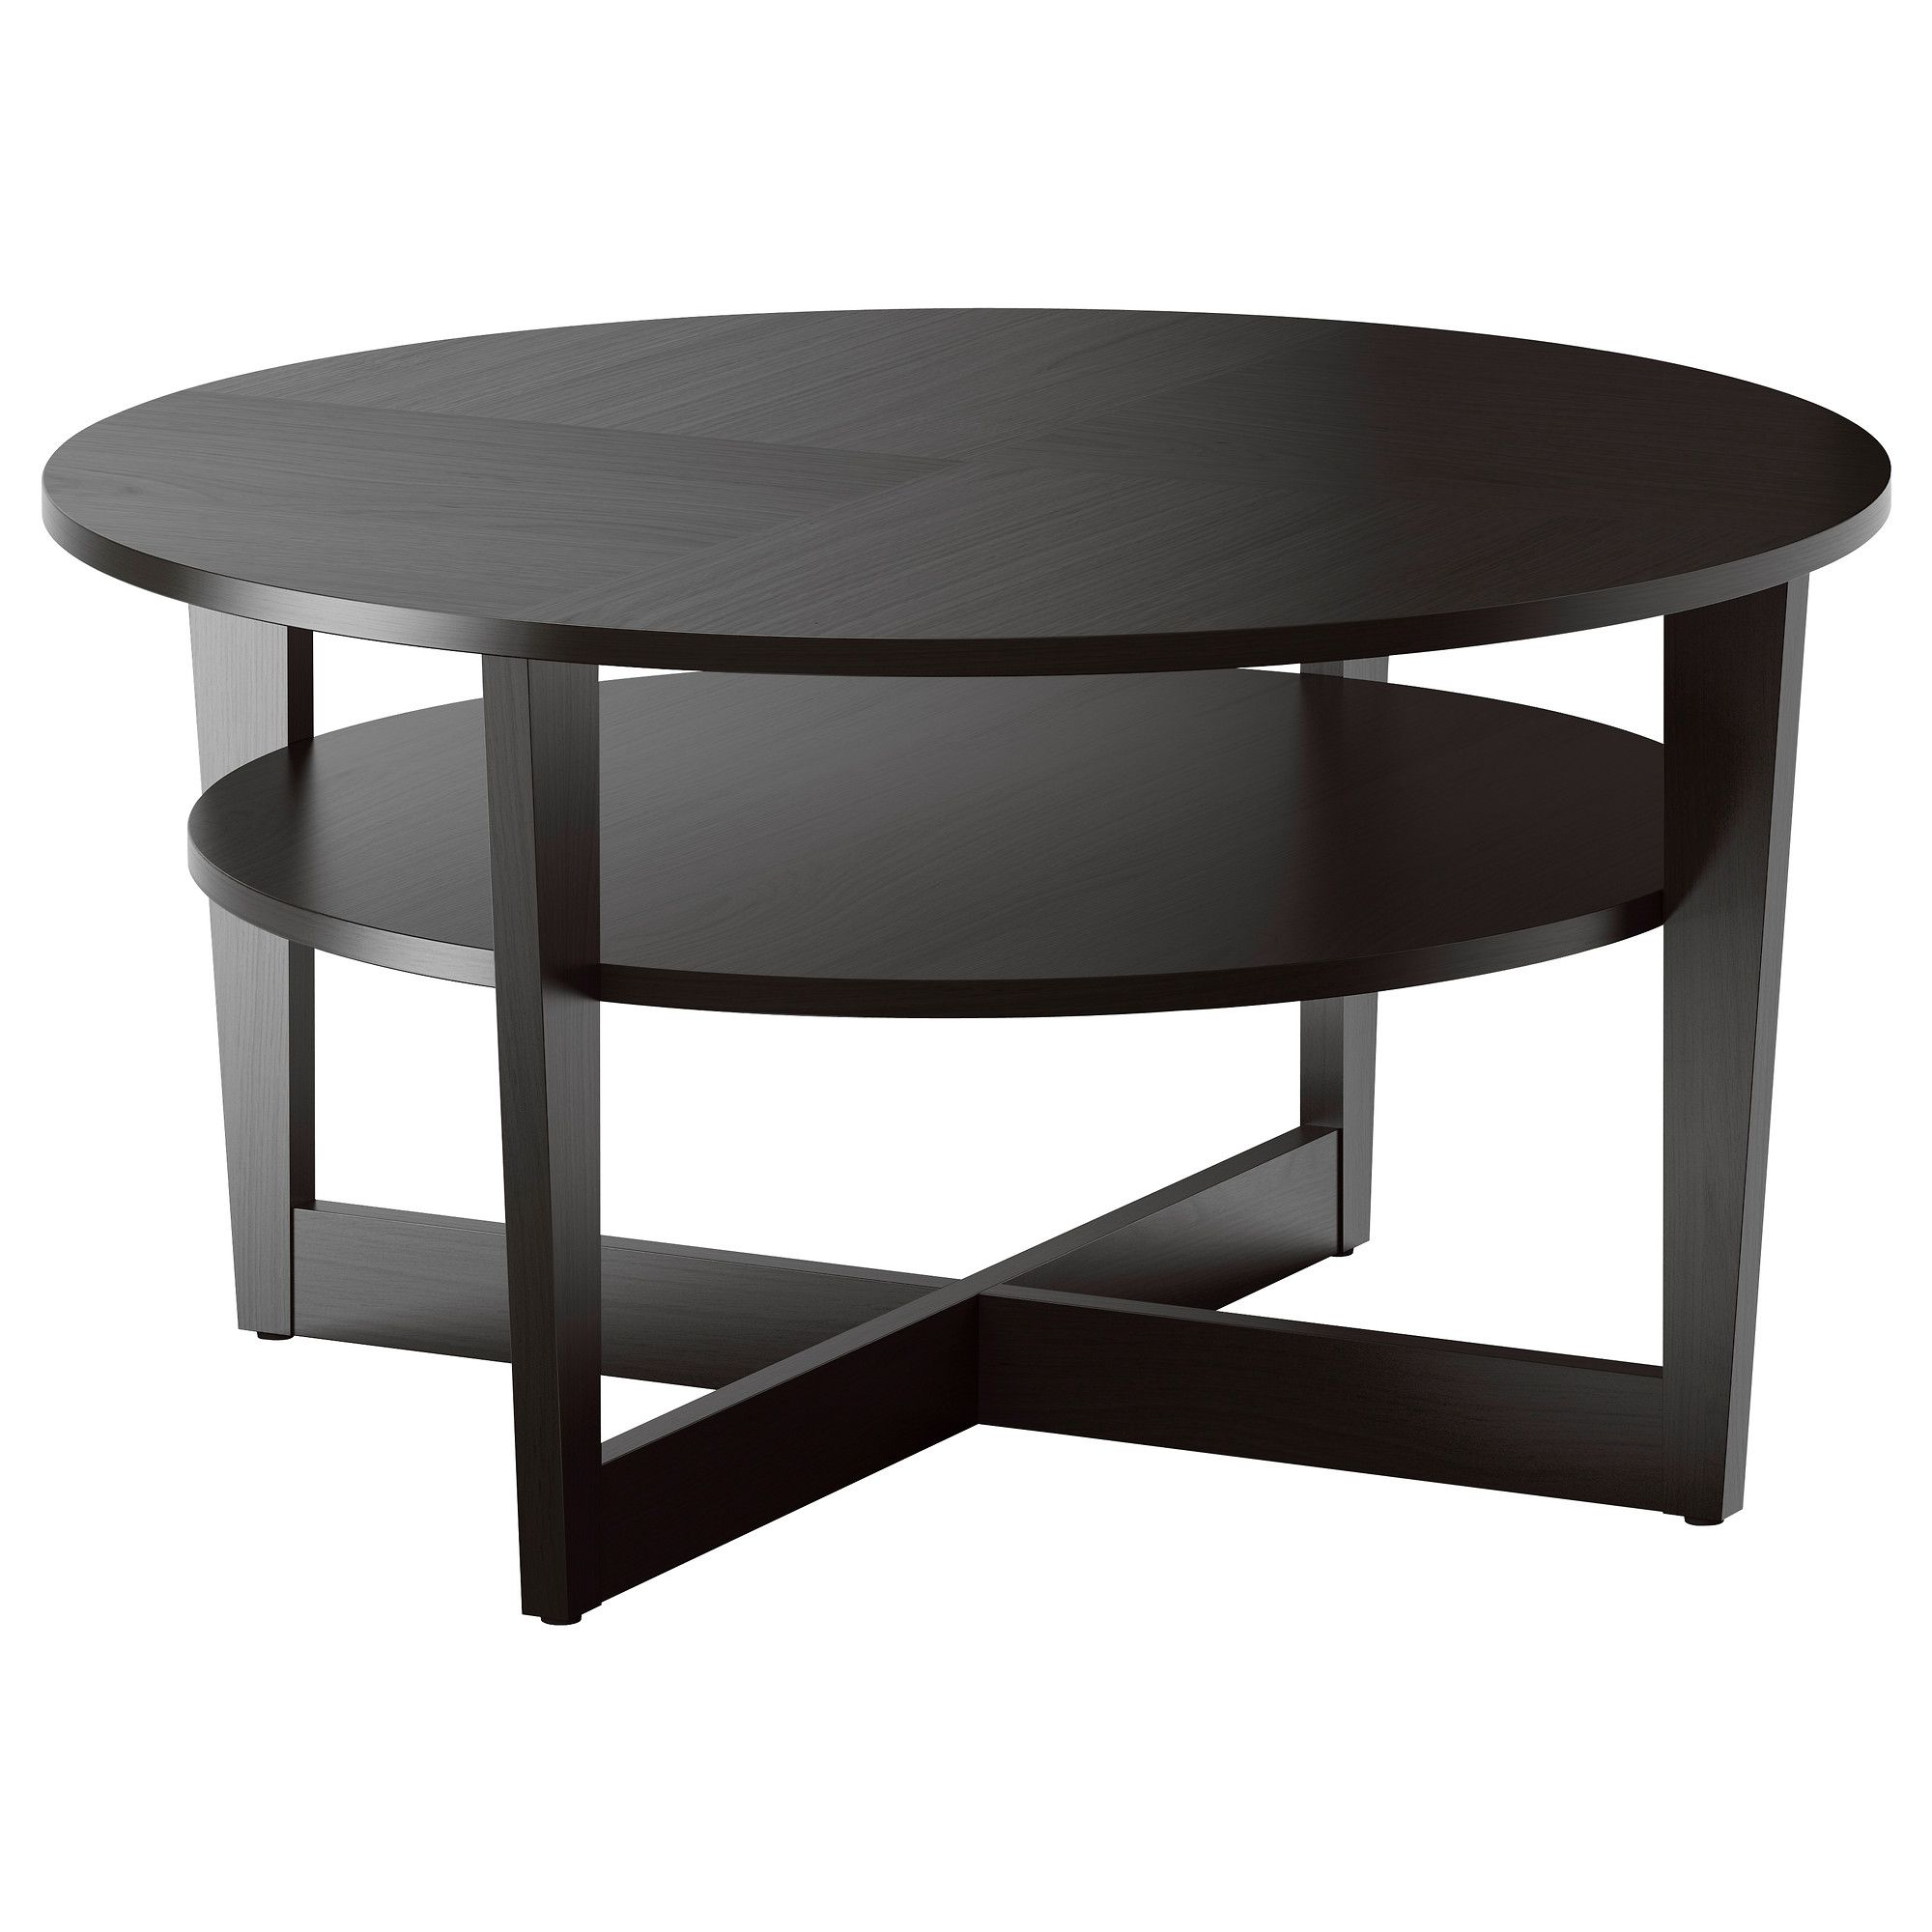 Table D'appoint Ikea Vejmon Table Basse Brun Noir Ikea Salon Table Living Room